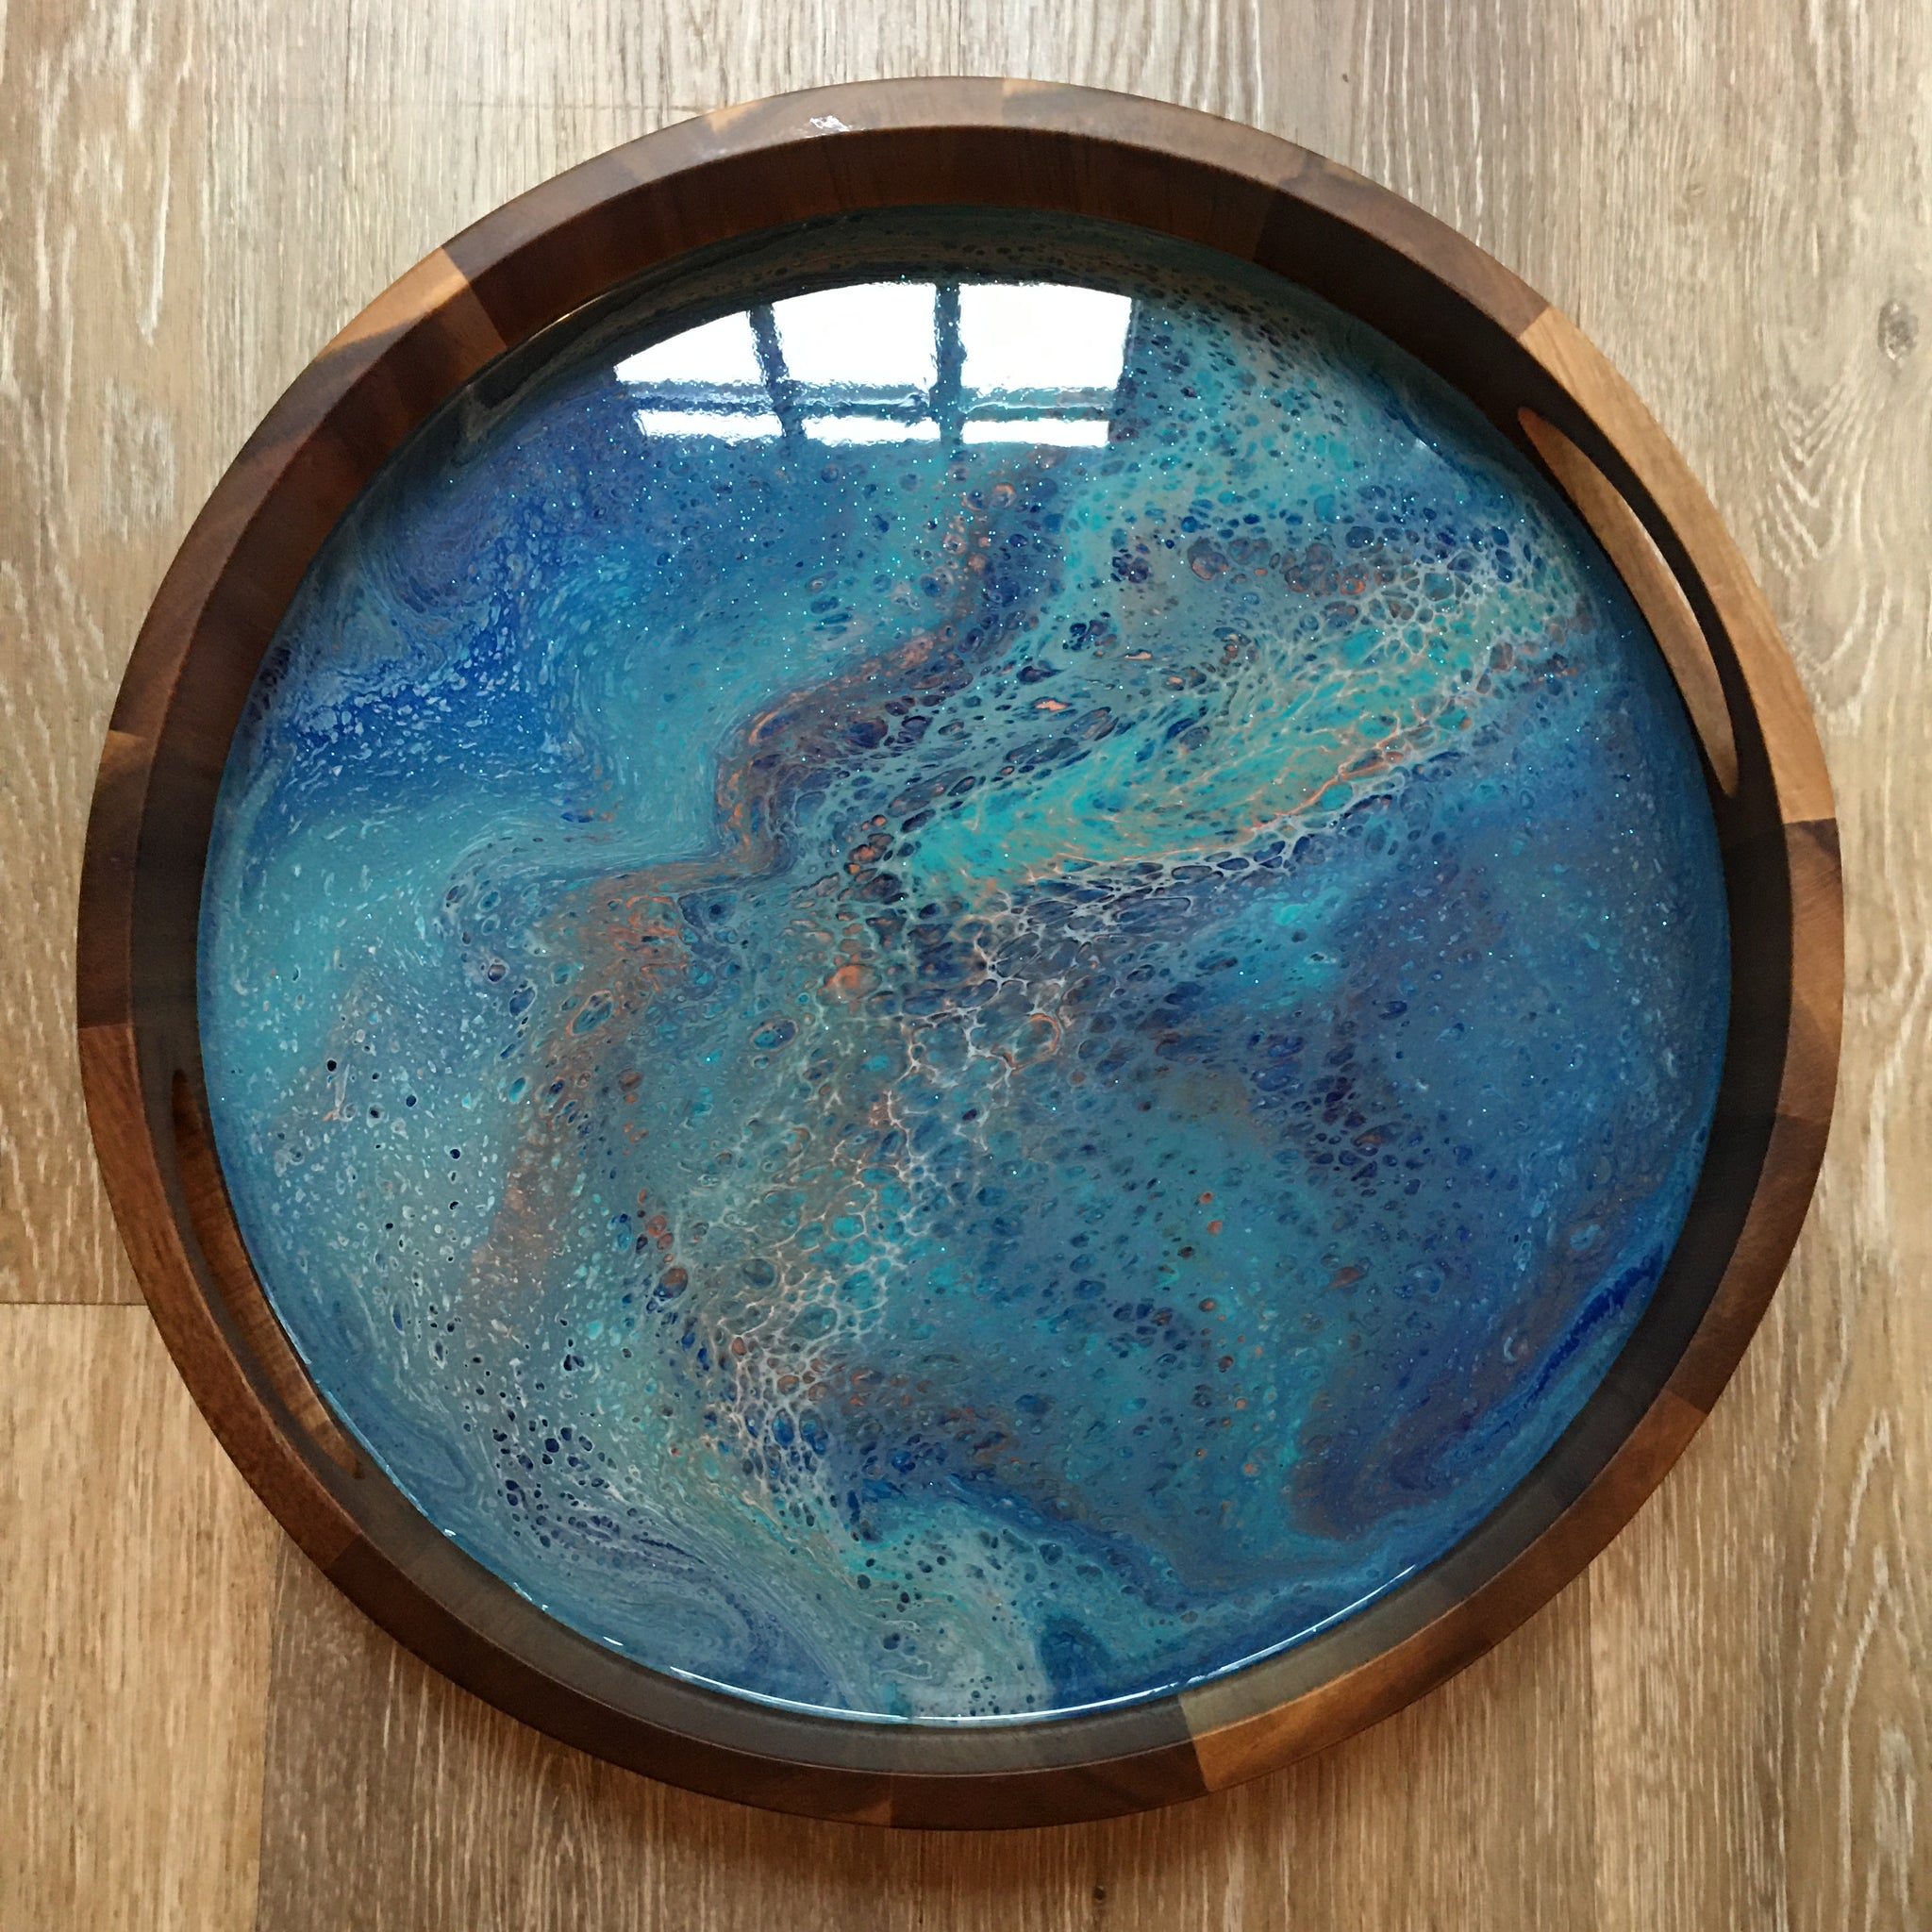 Blue/Aqua/Copper Abstract Round Wooden Tray 104 - Original Acrylic Painting on Acacia Wood Tray with High-Gloss Resin Finish